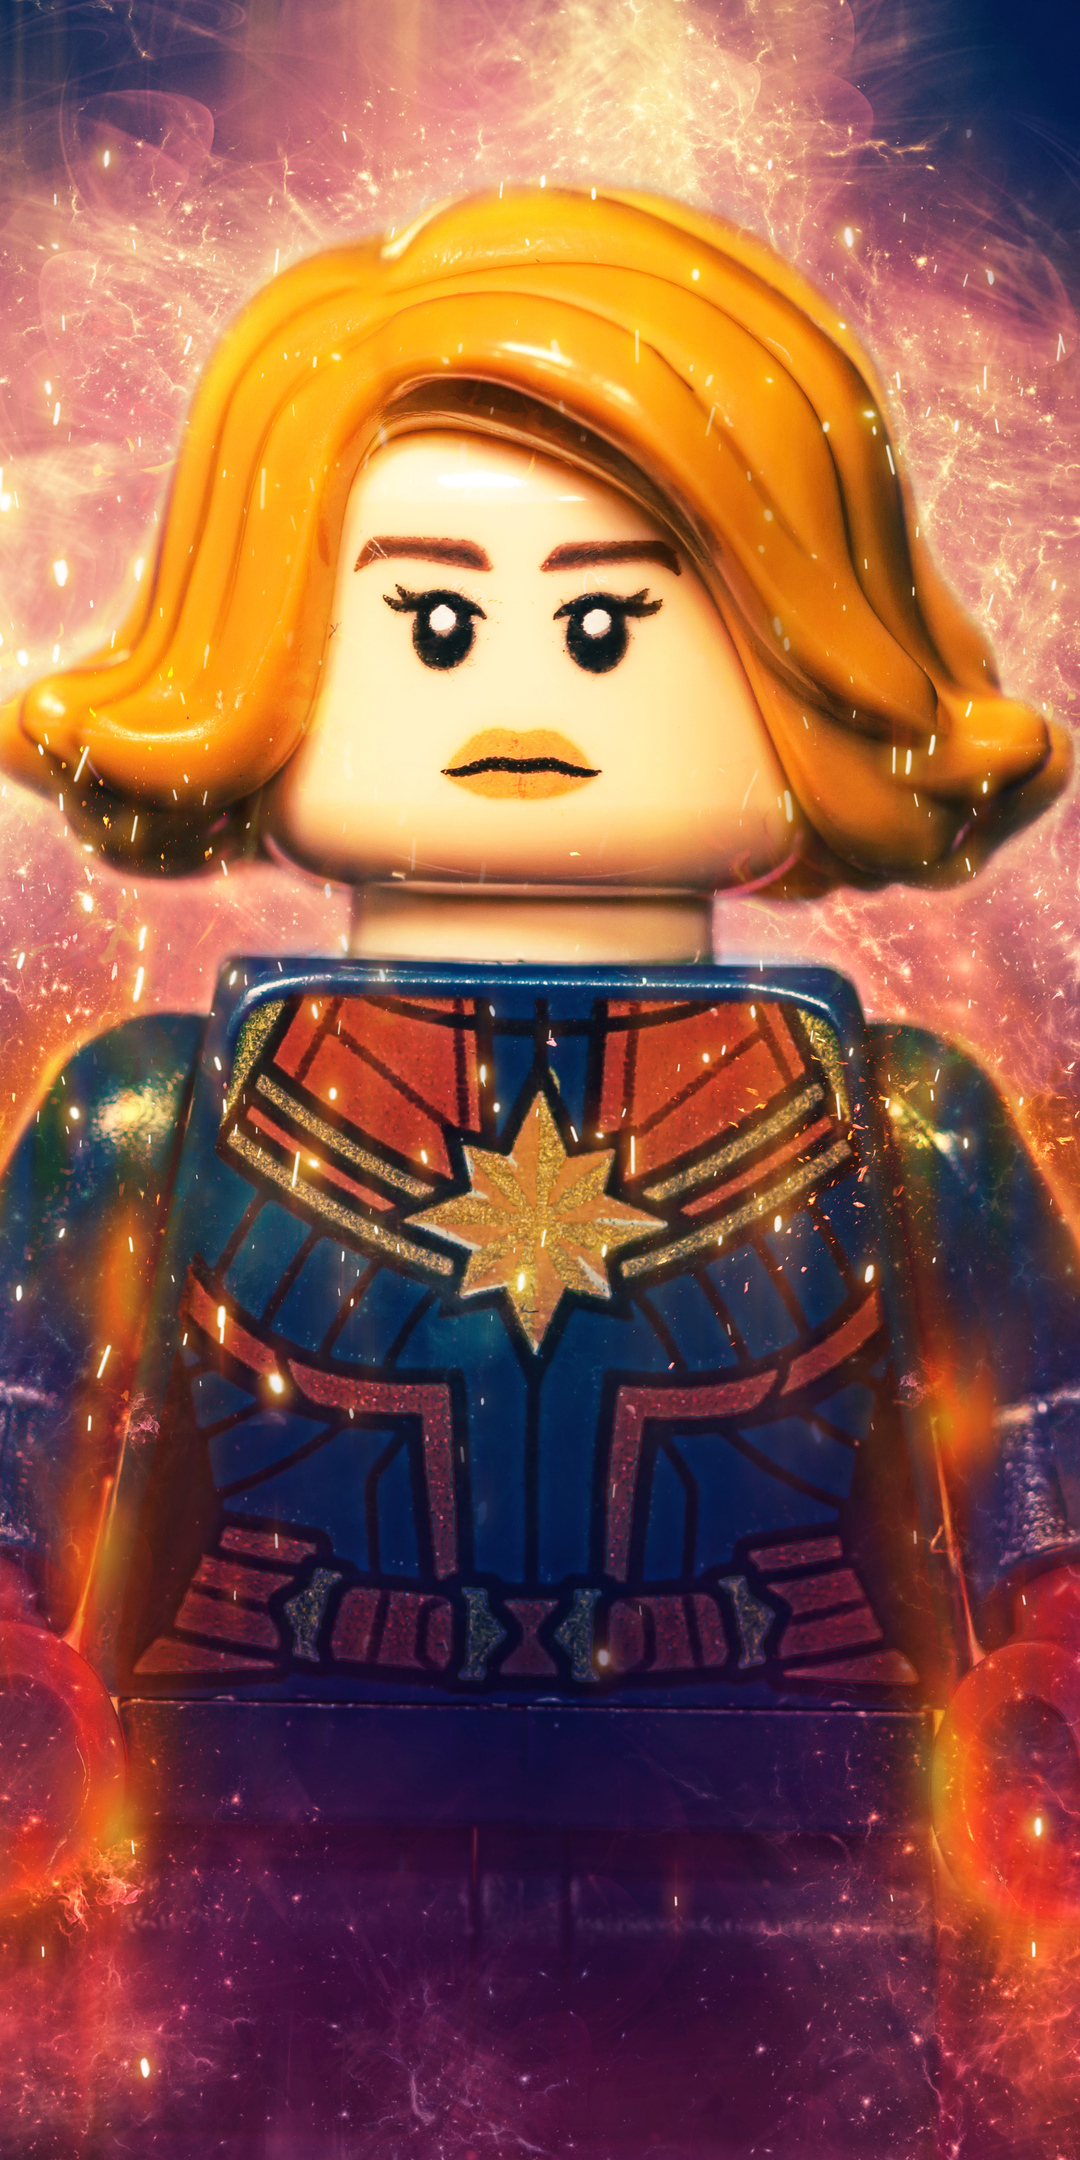 captain-marvel-lego-4k-uj.jpg